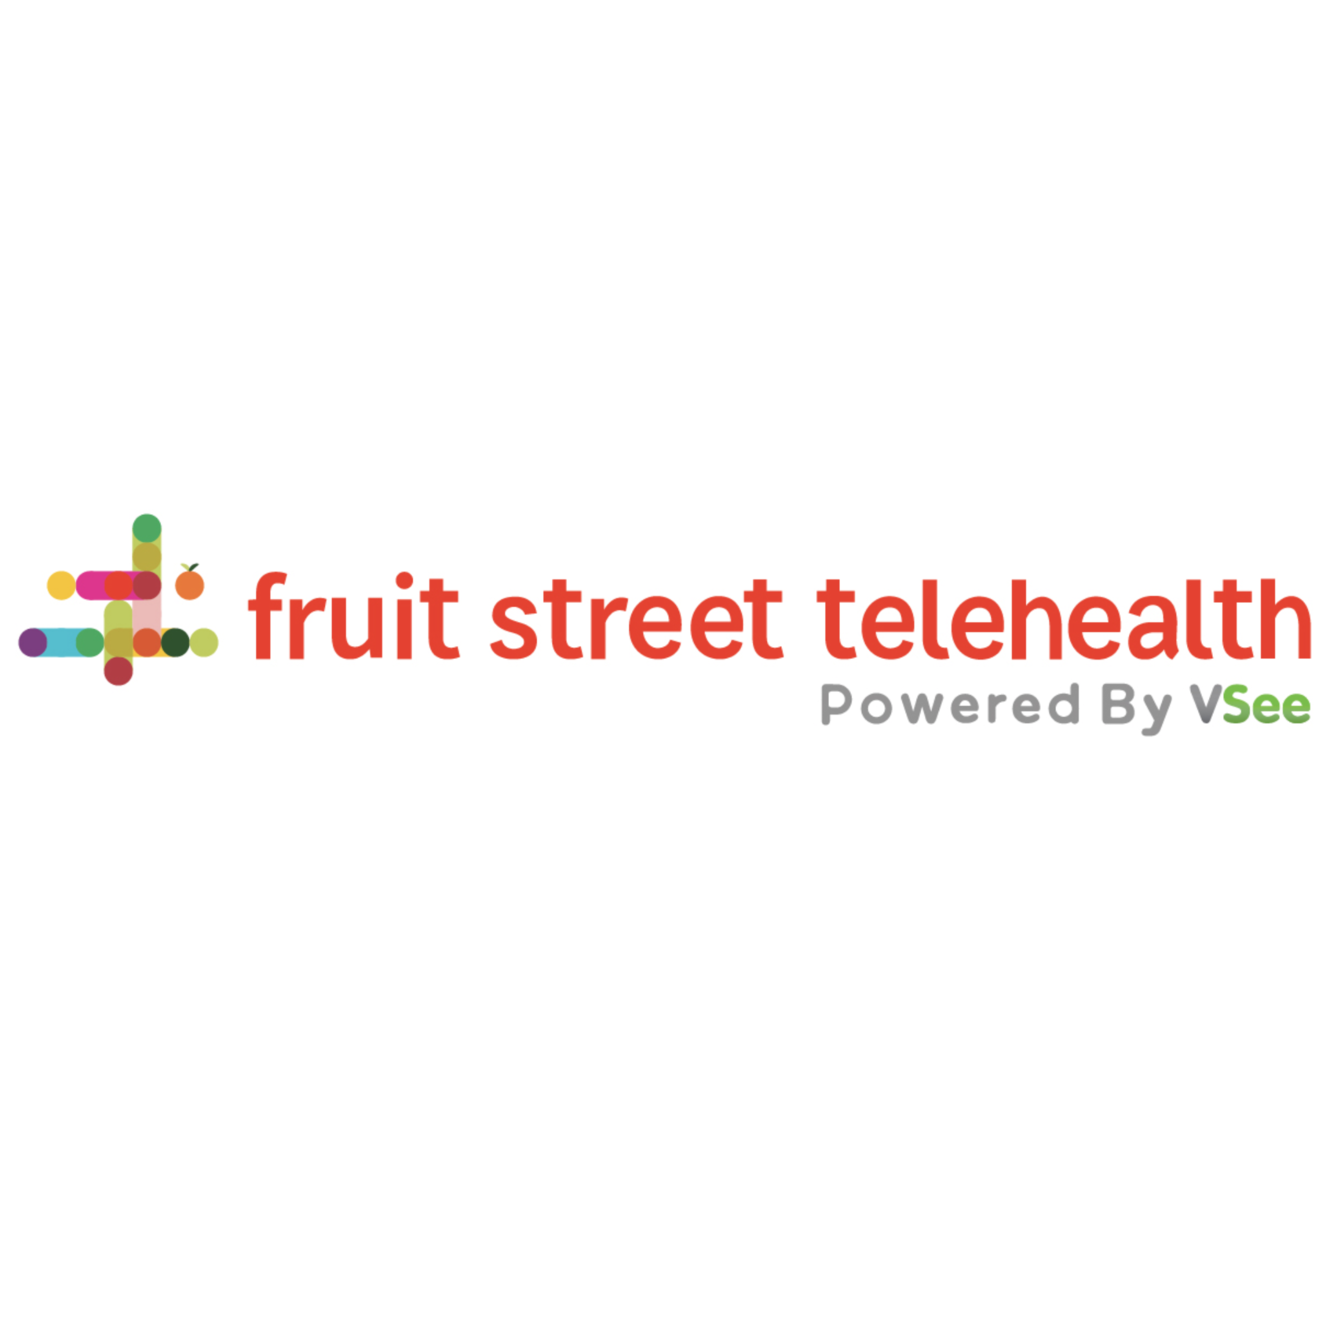 Fruit Street Telehealth